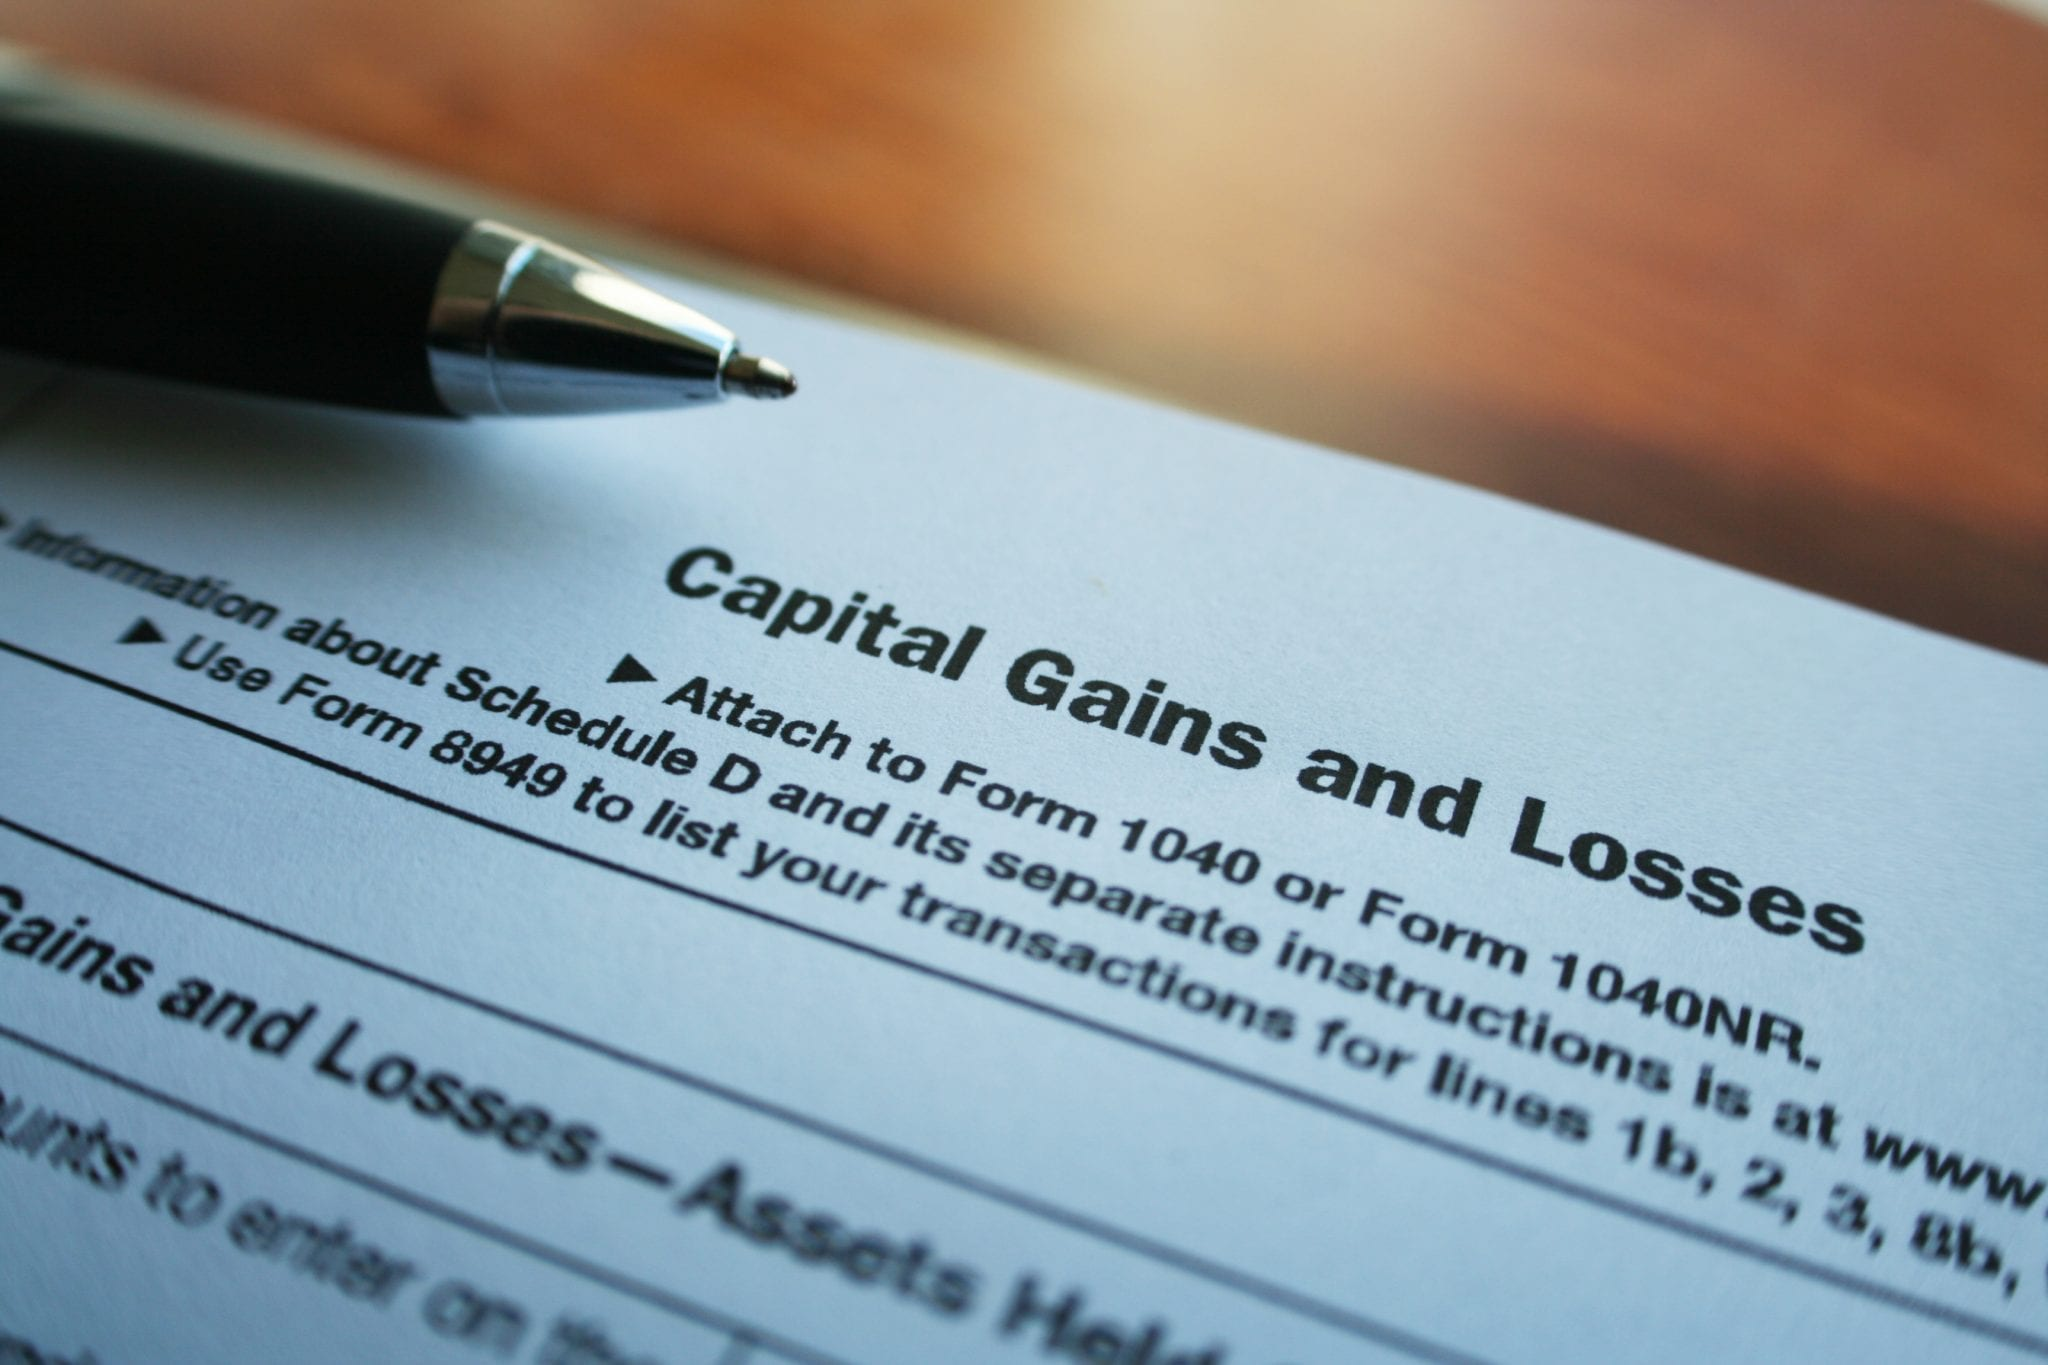 capital gains tax on real estate investment property